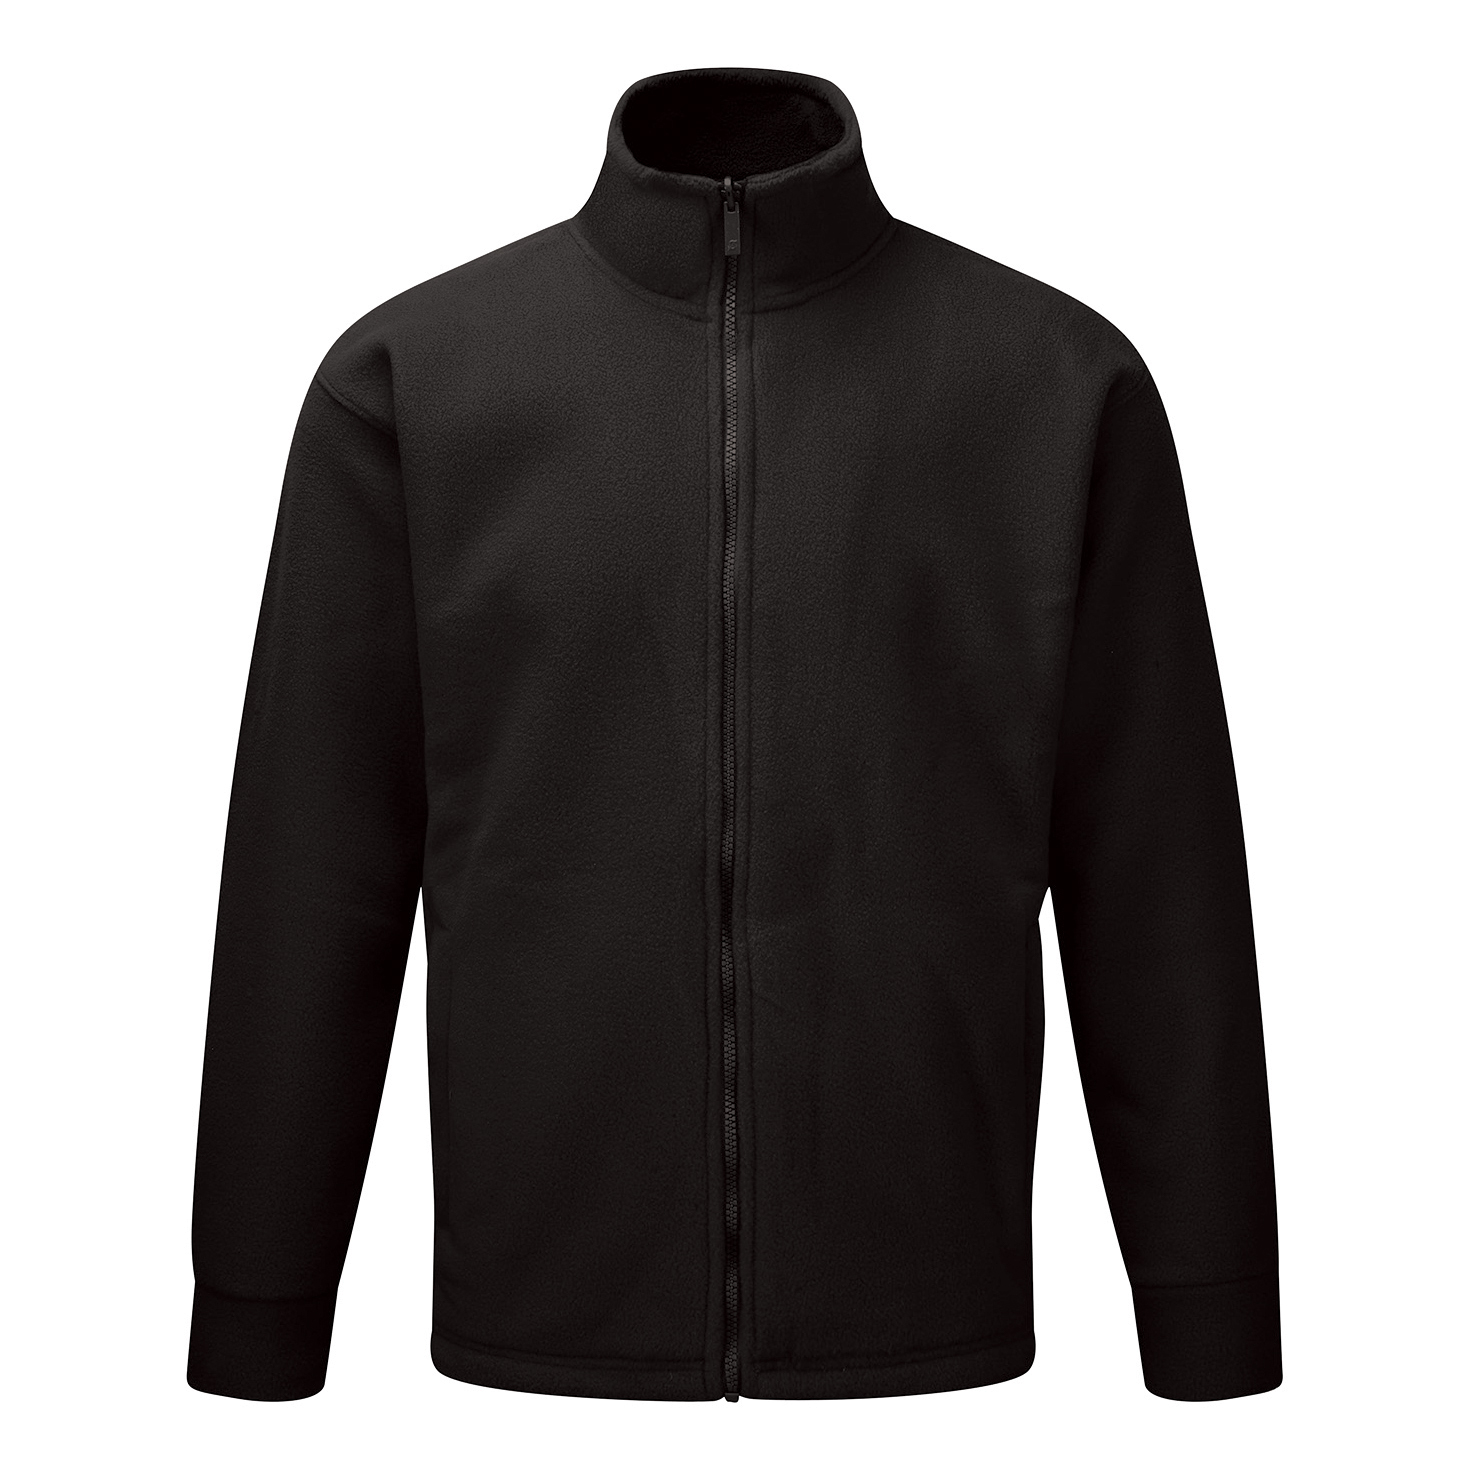 Classic Fleece Jacket Elasticated Cuffs Full Zip Front 2XL Black Ref FLJBLXXL *1-3 Days Lead Time*